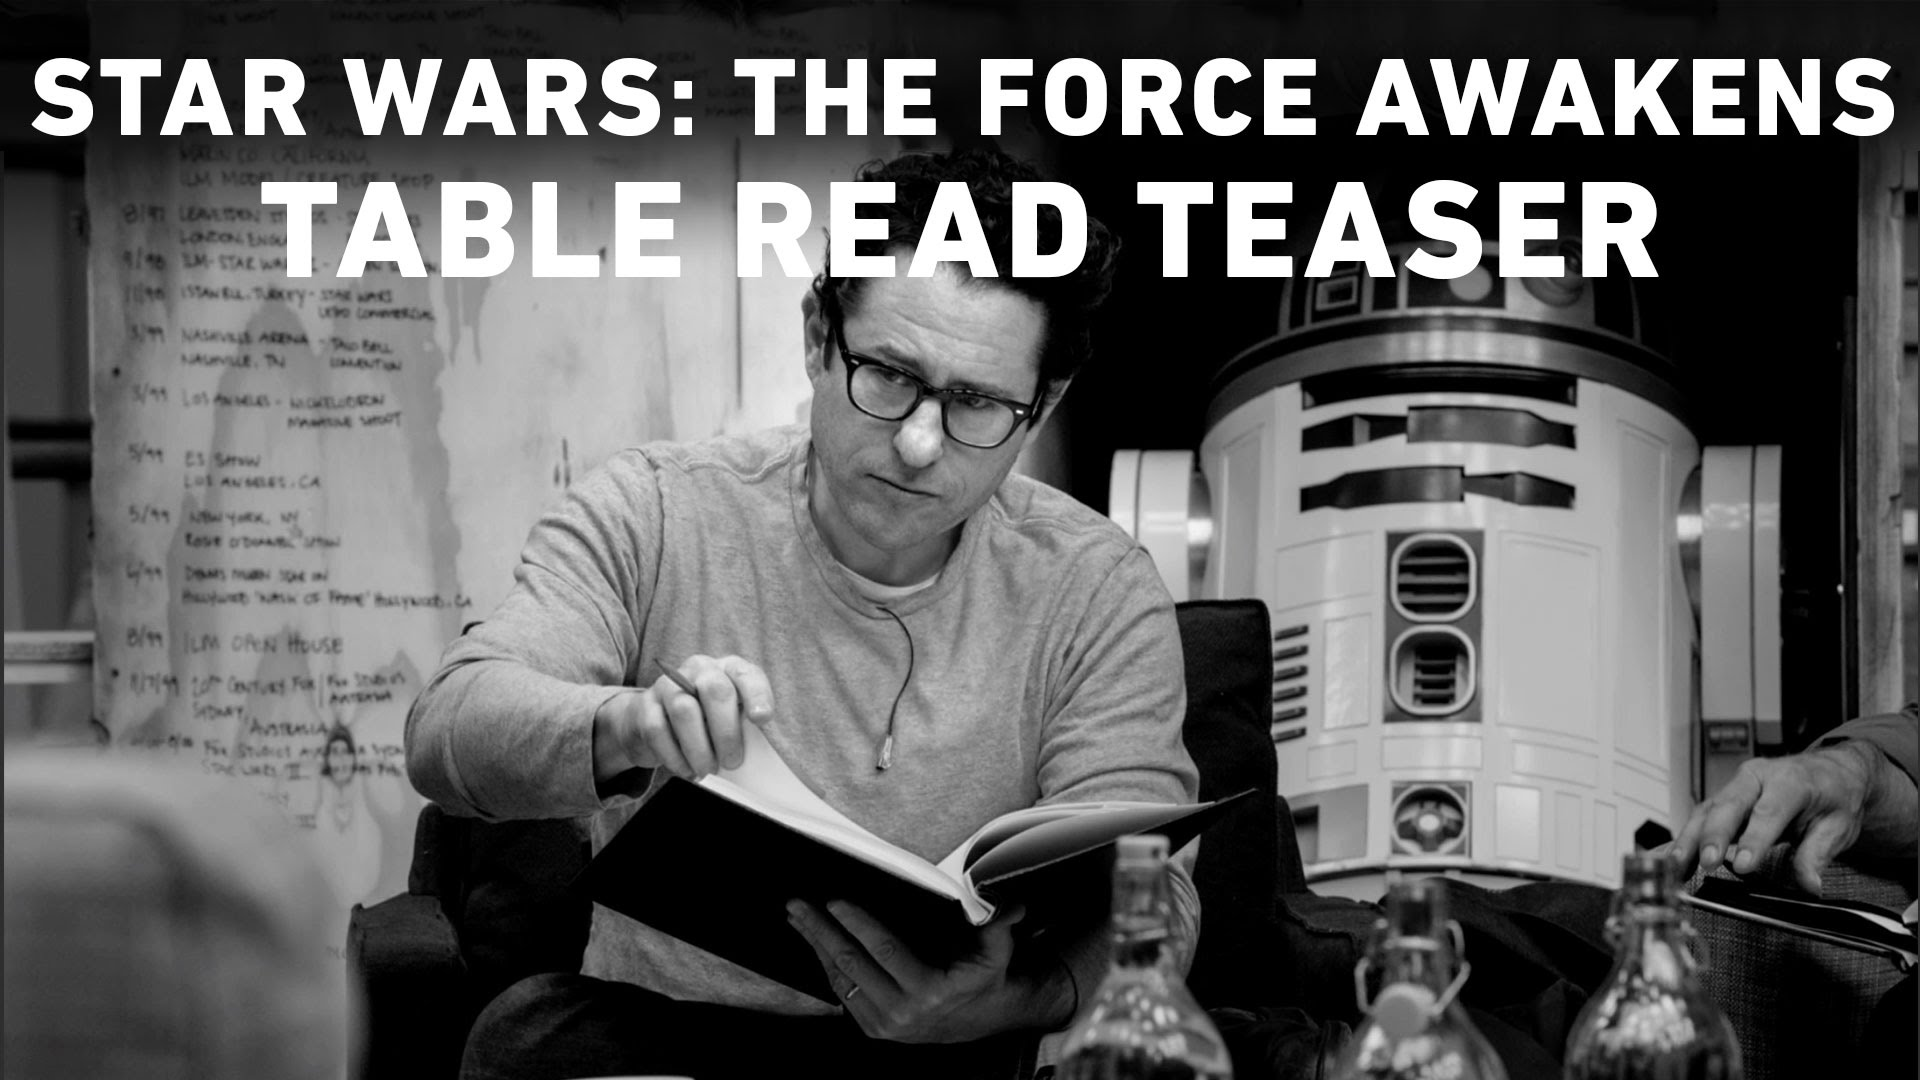 Star Wars: The Force Awakens Table Read Teaser